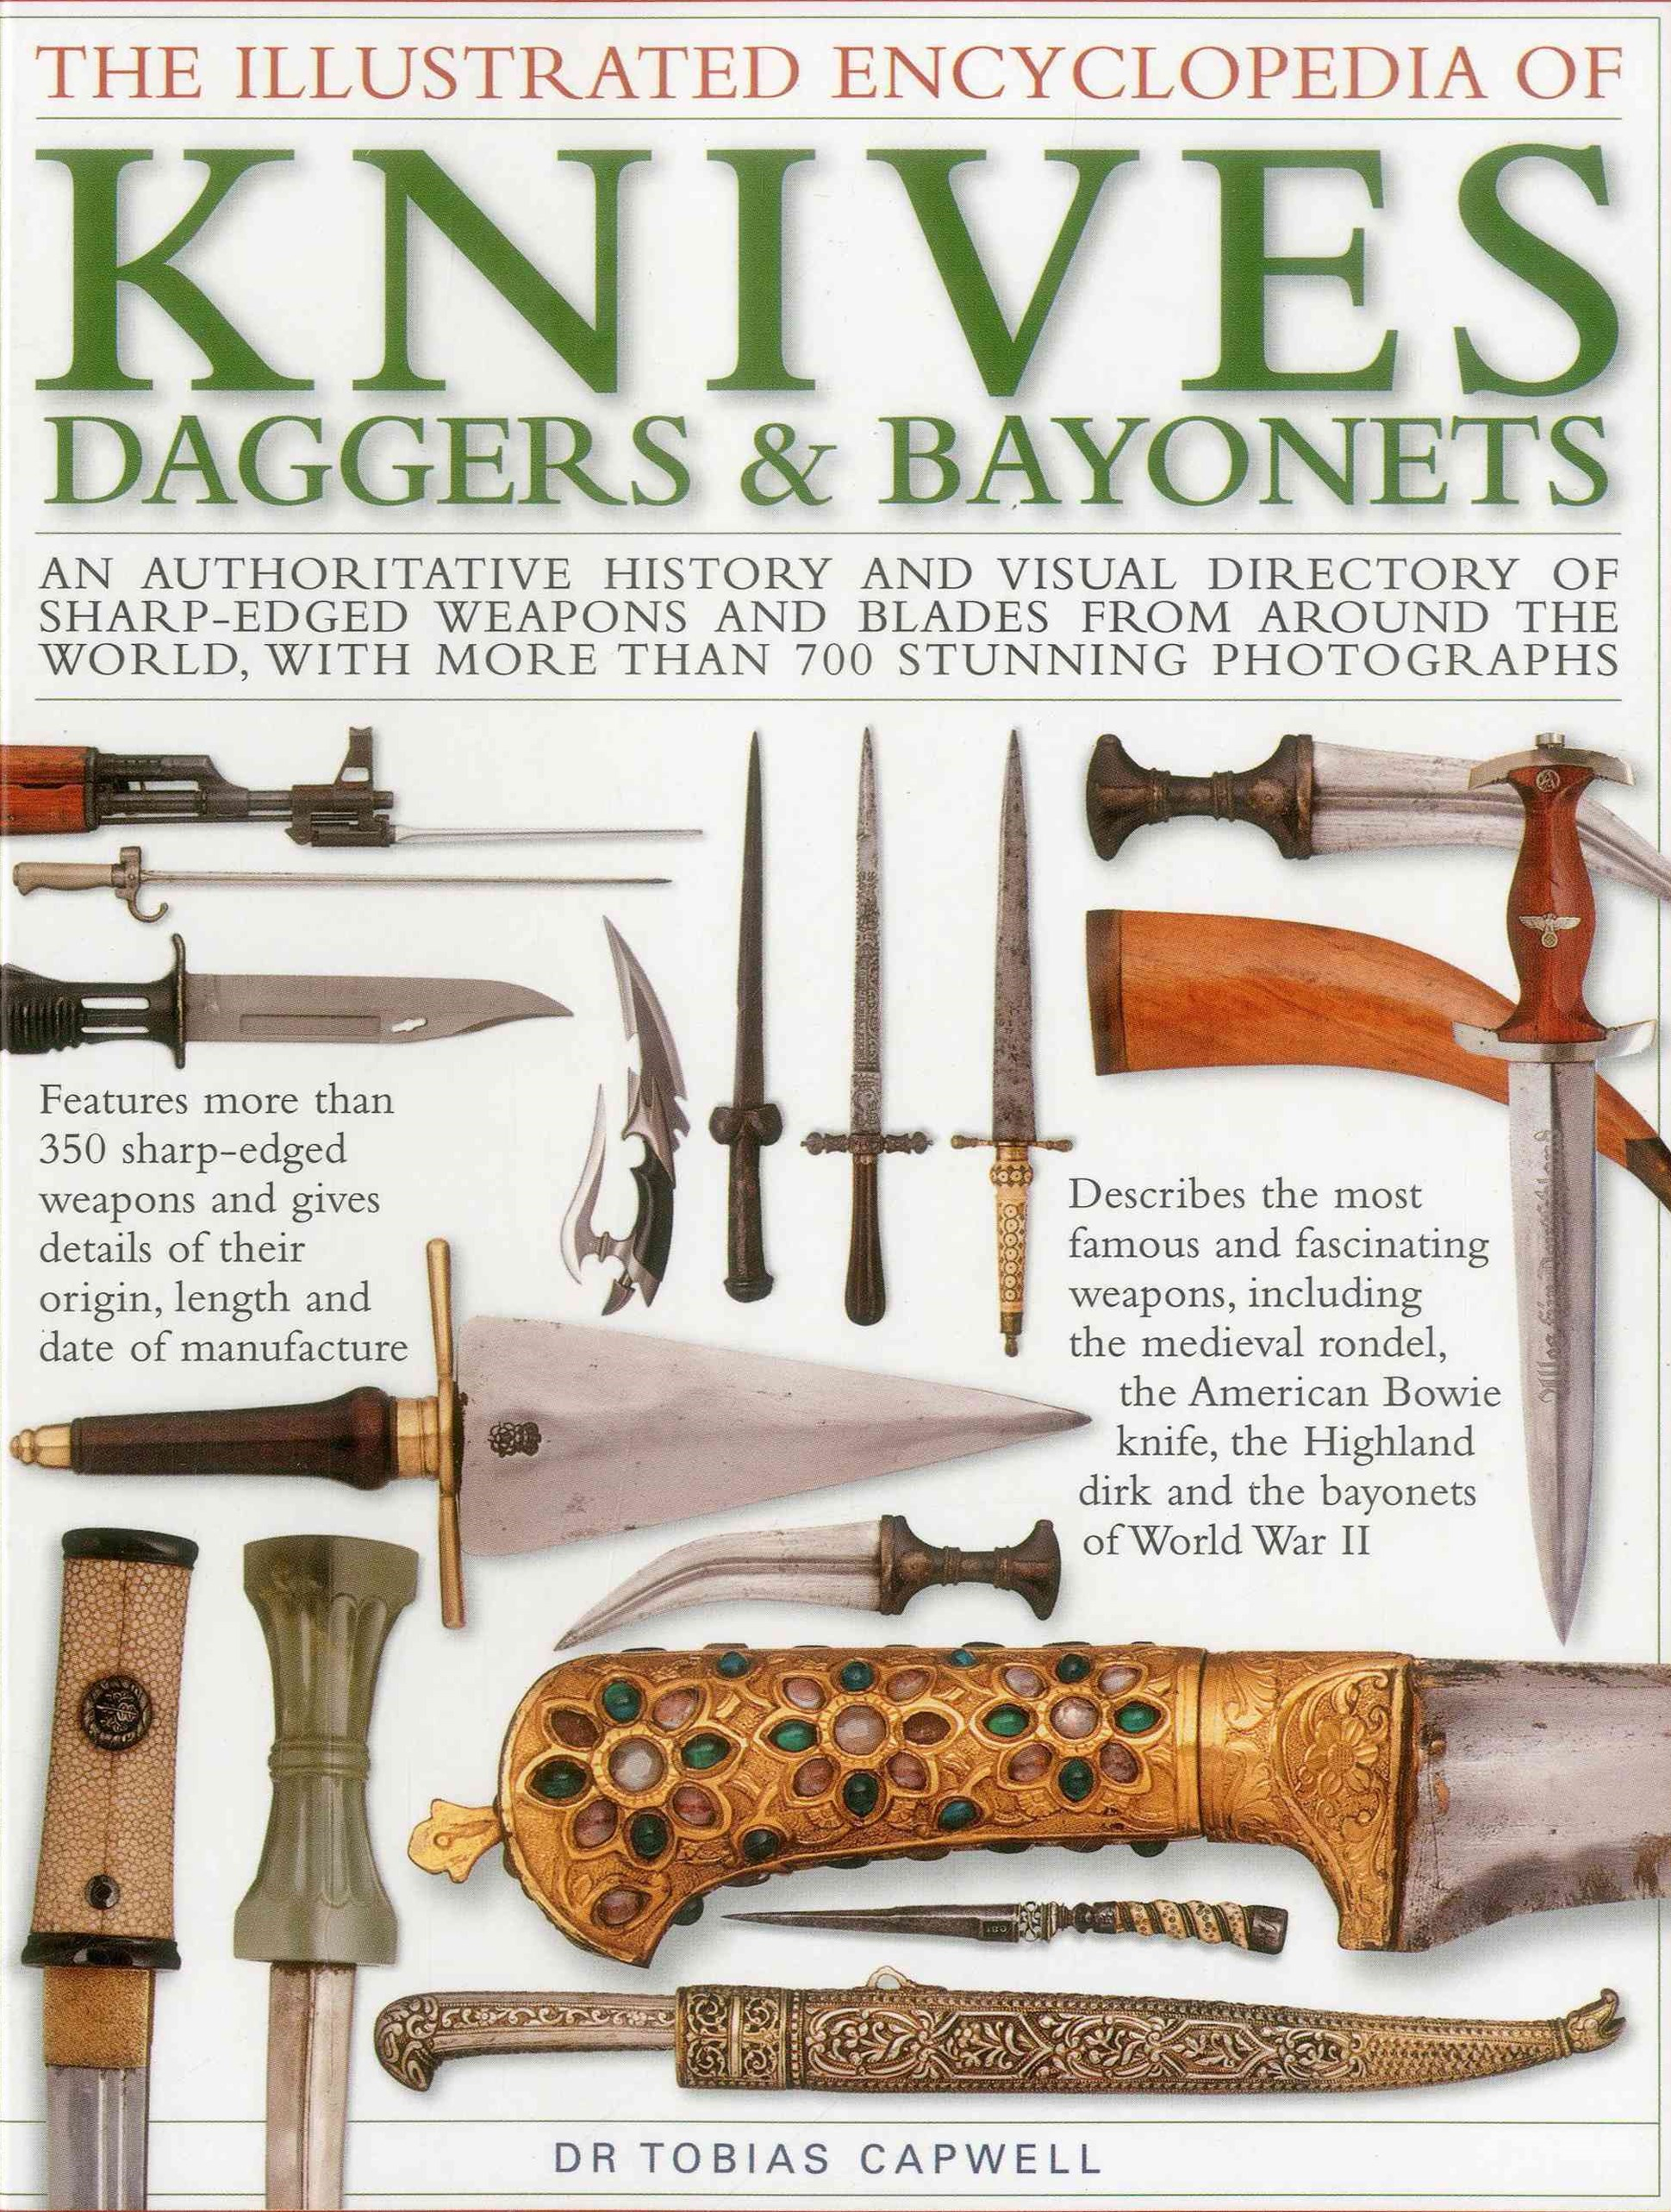 The Illustrated Encyclopedia of Knives, Daggers and Bayonets